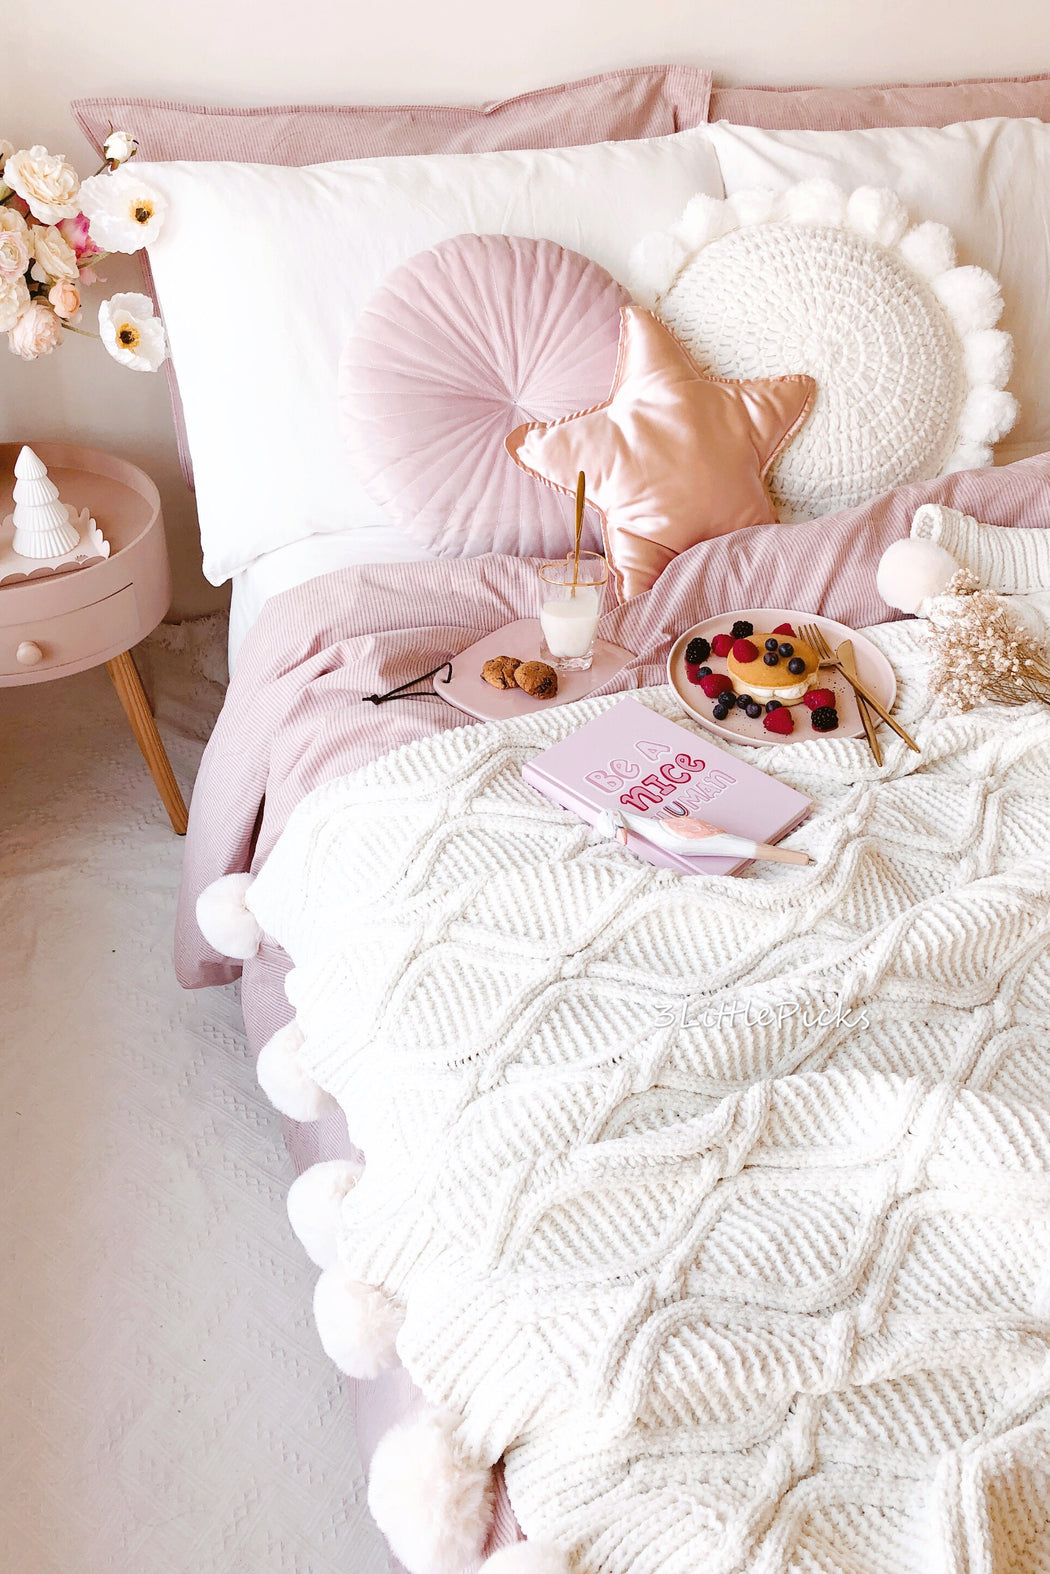 COMING BACK: Cream Faux Fur Pom Chenille Throw, Textile, 3LittlePicks - 3LittlePicks